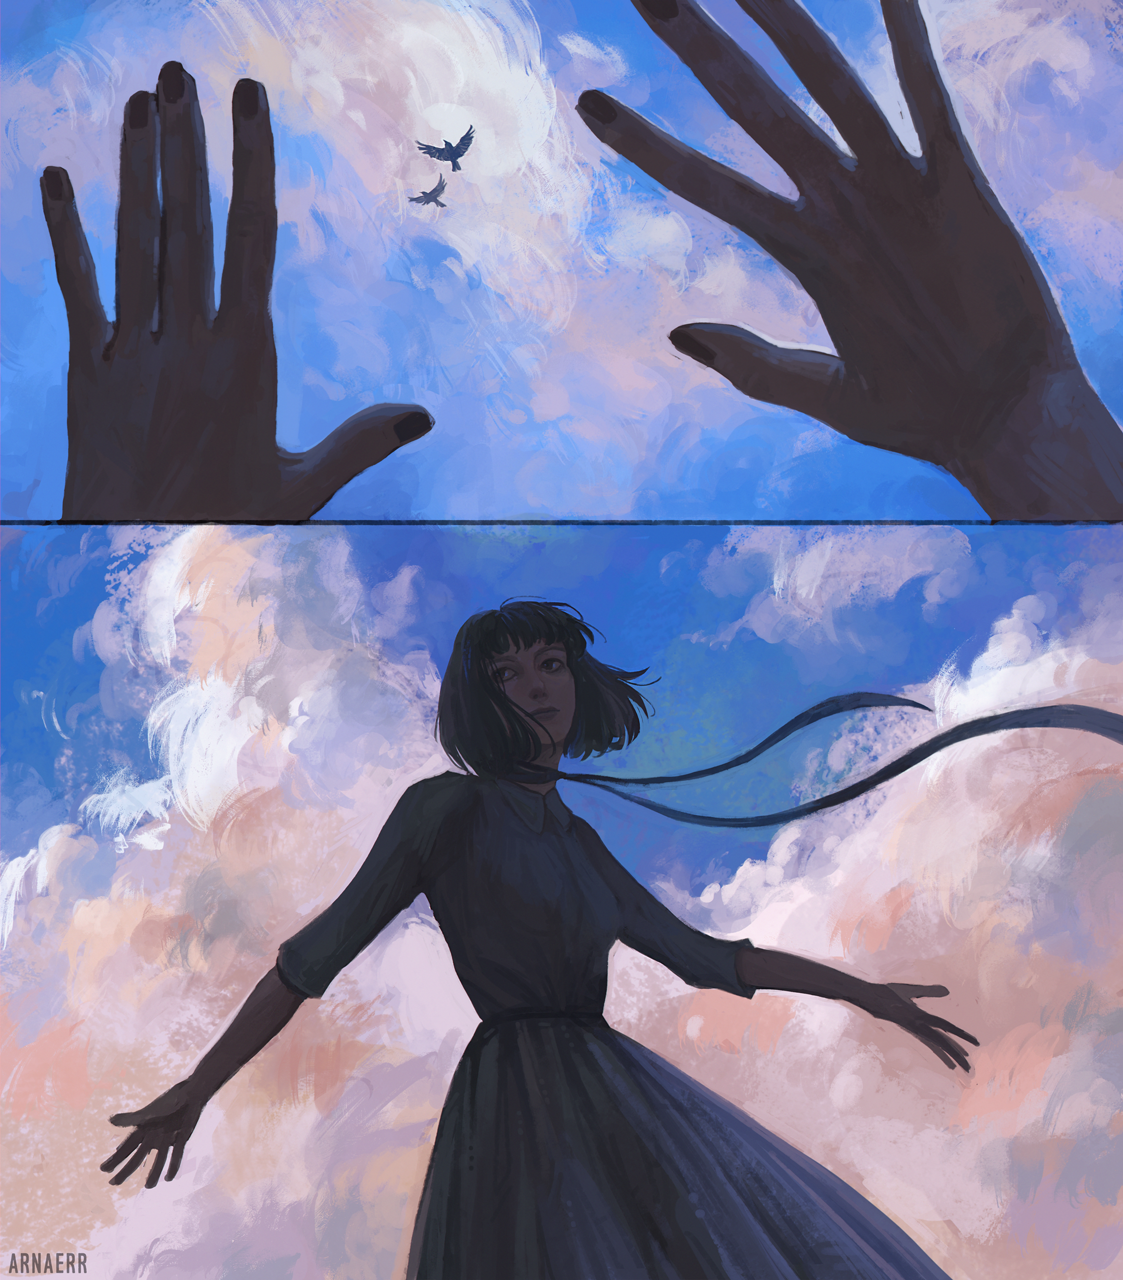 Voices In The Sky by arnaerr on DeviantArt